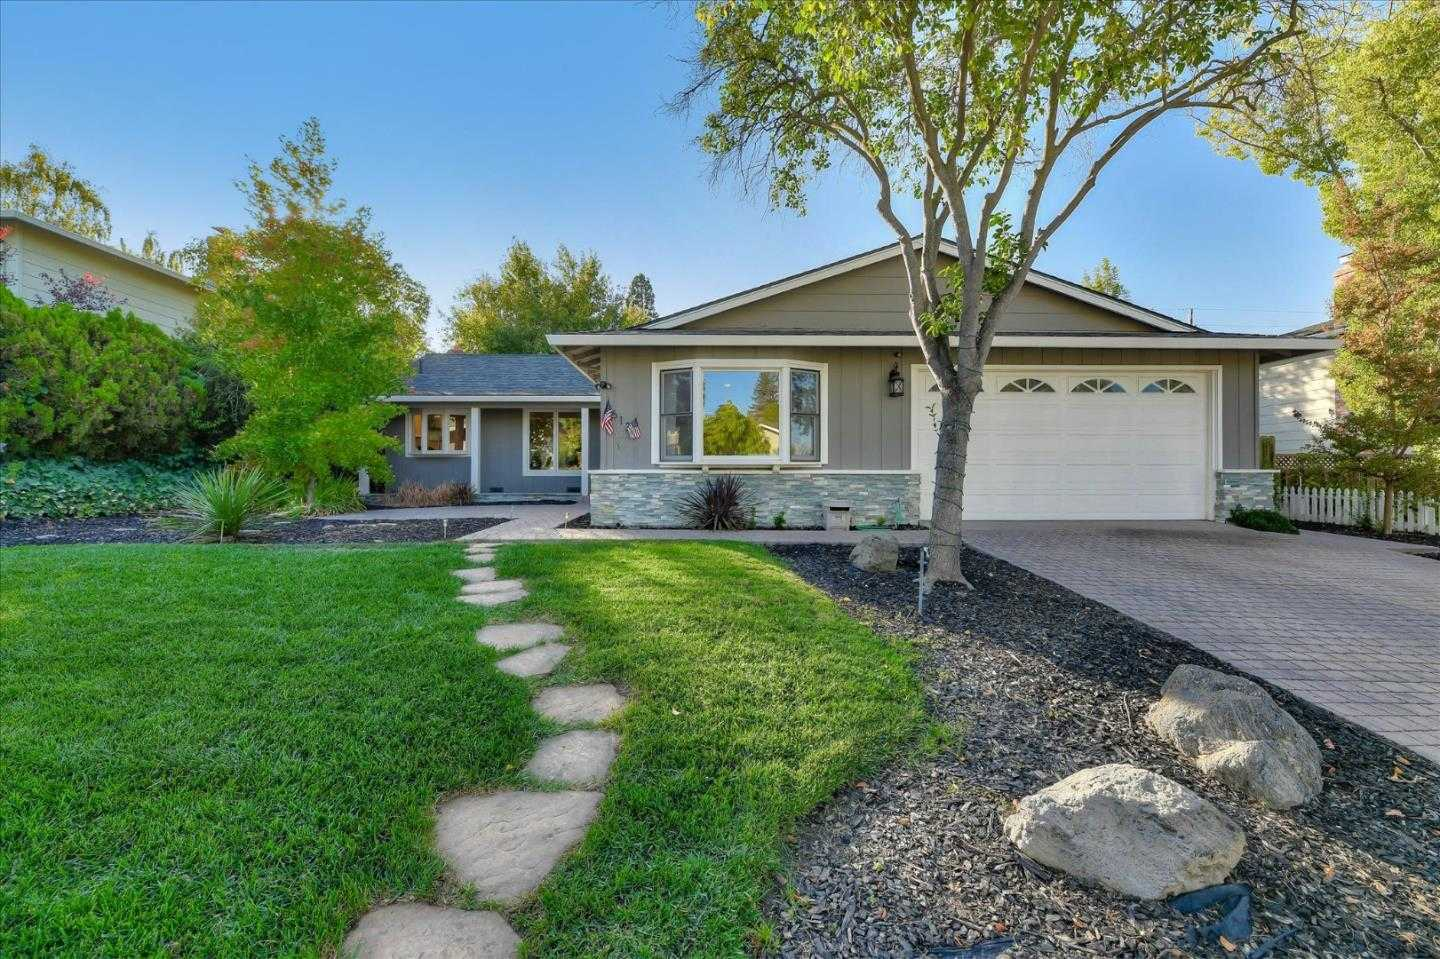 $1,449,000 - 3Br/2Ba -  for Sale in San Jose